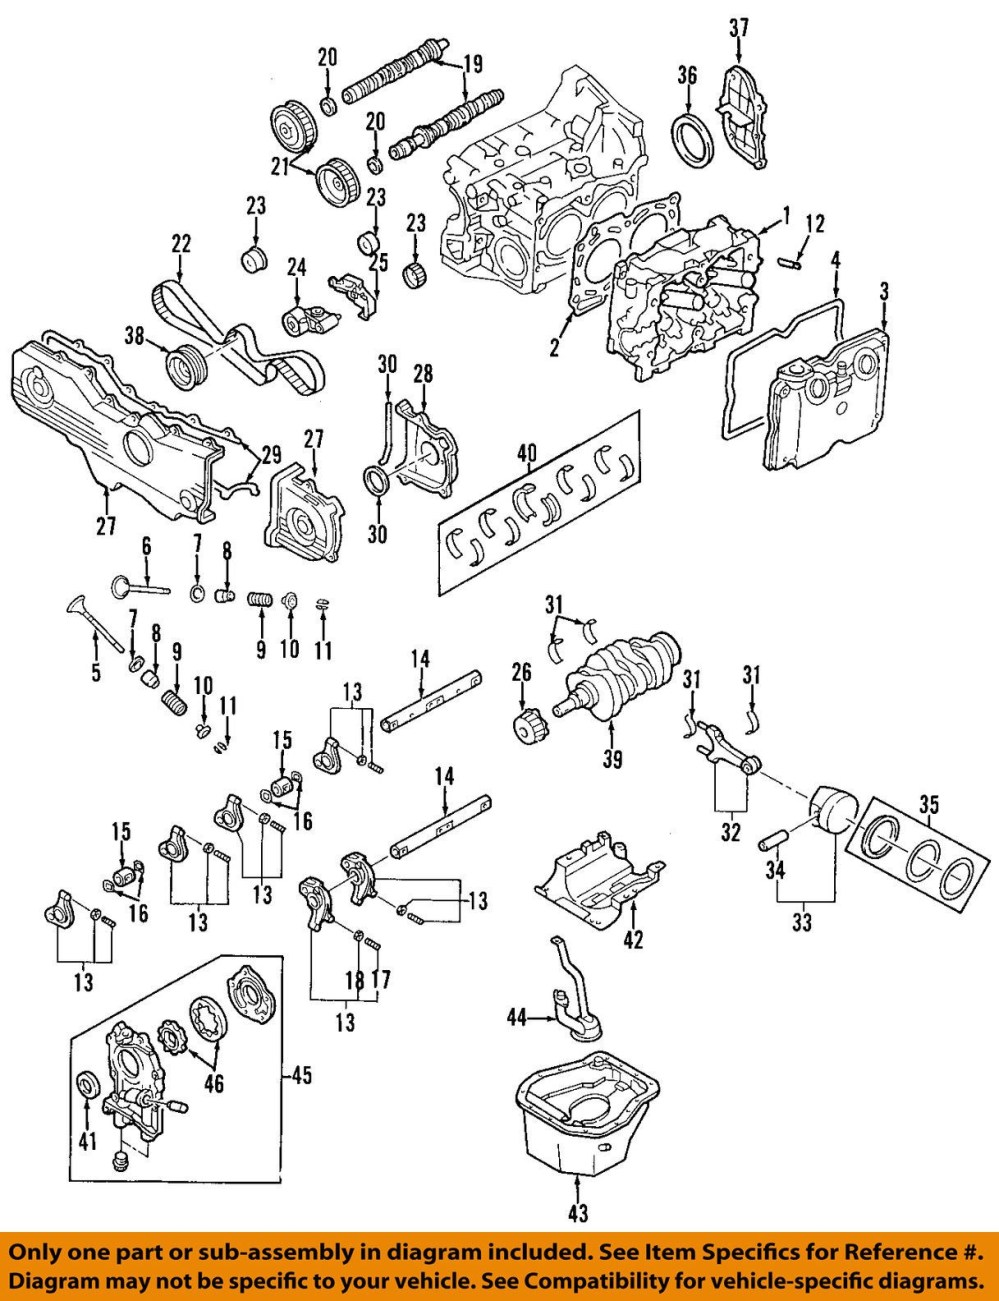 medium resolution of subaru wrx engine diagram wiring diagram inside 08 sti engine diagram engine parts 2003 subaru outback